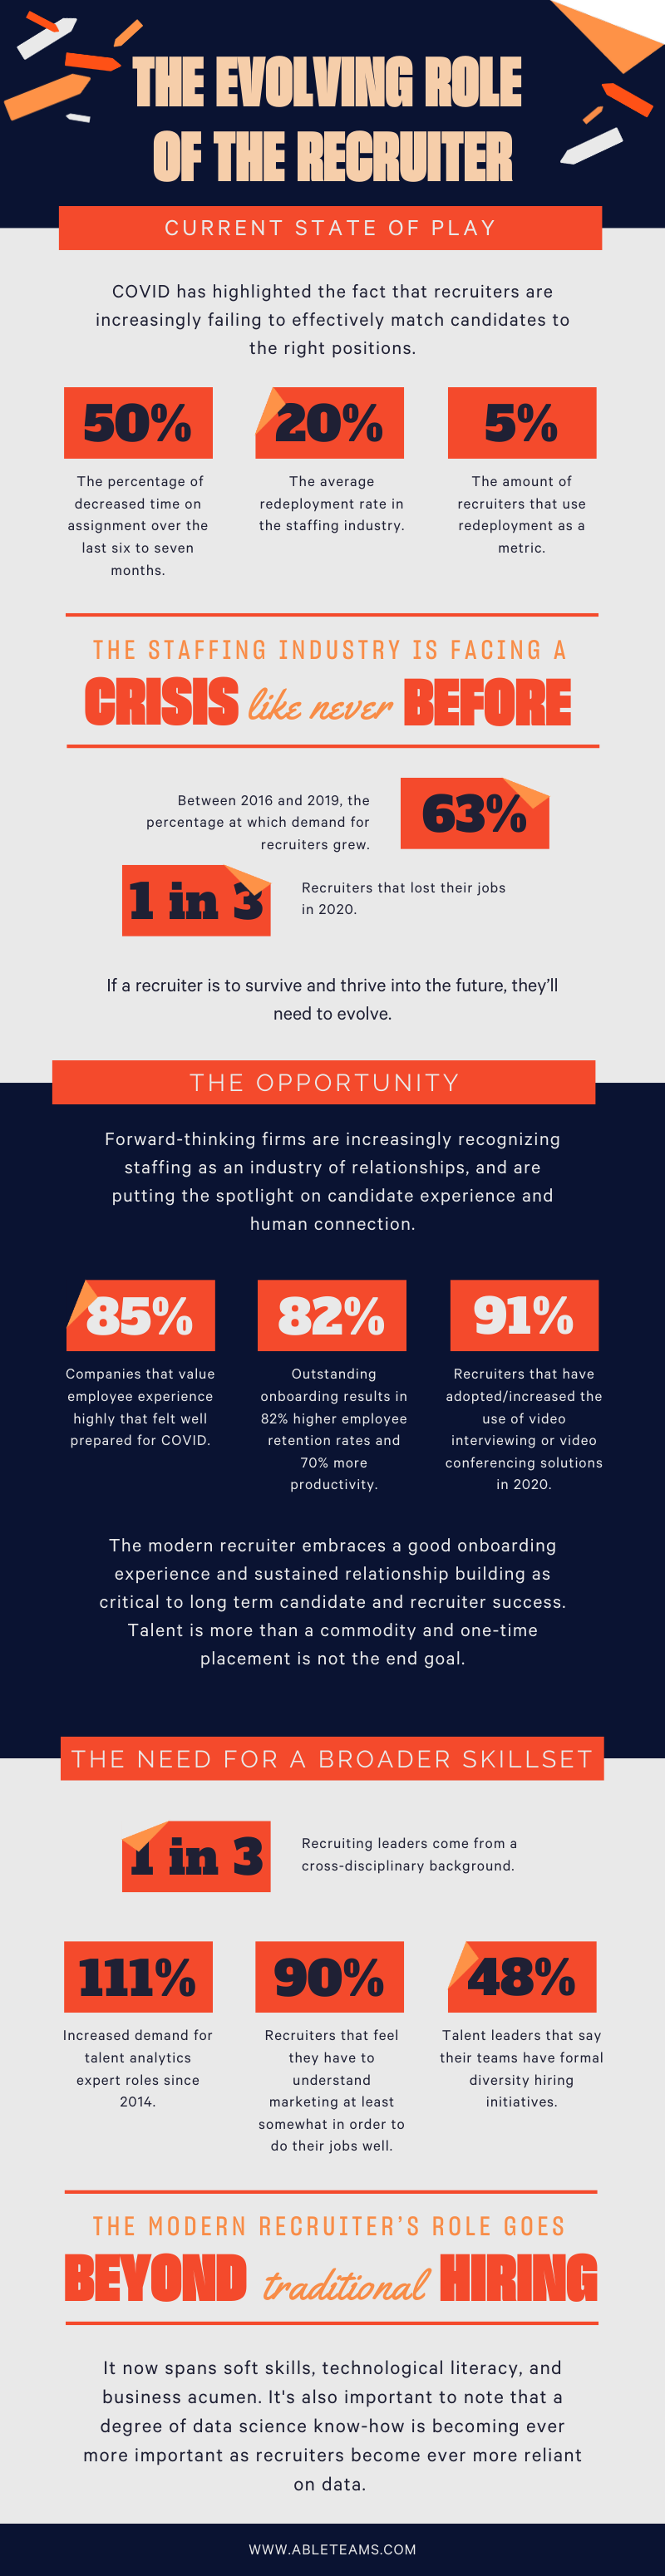 The Evolving Role of the Recruiter Infographic